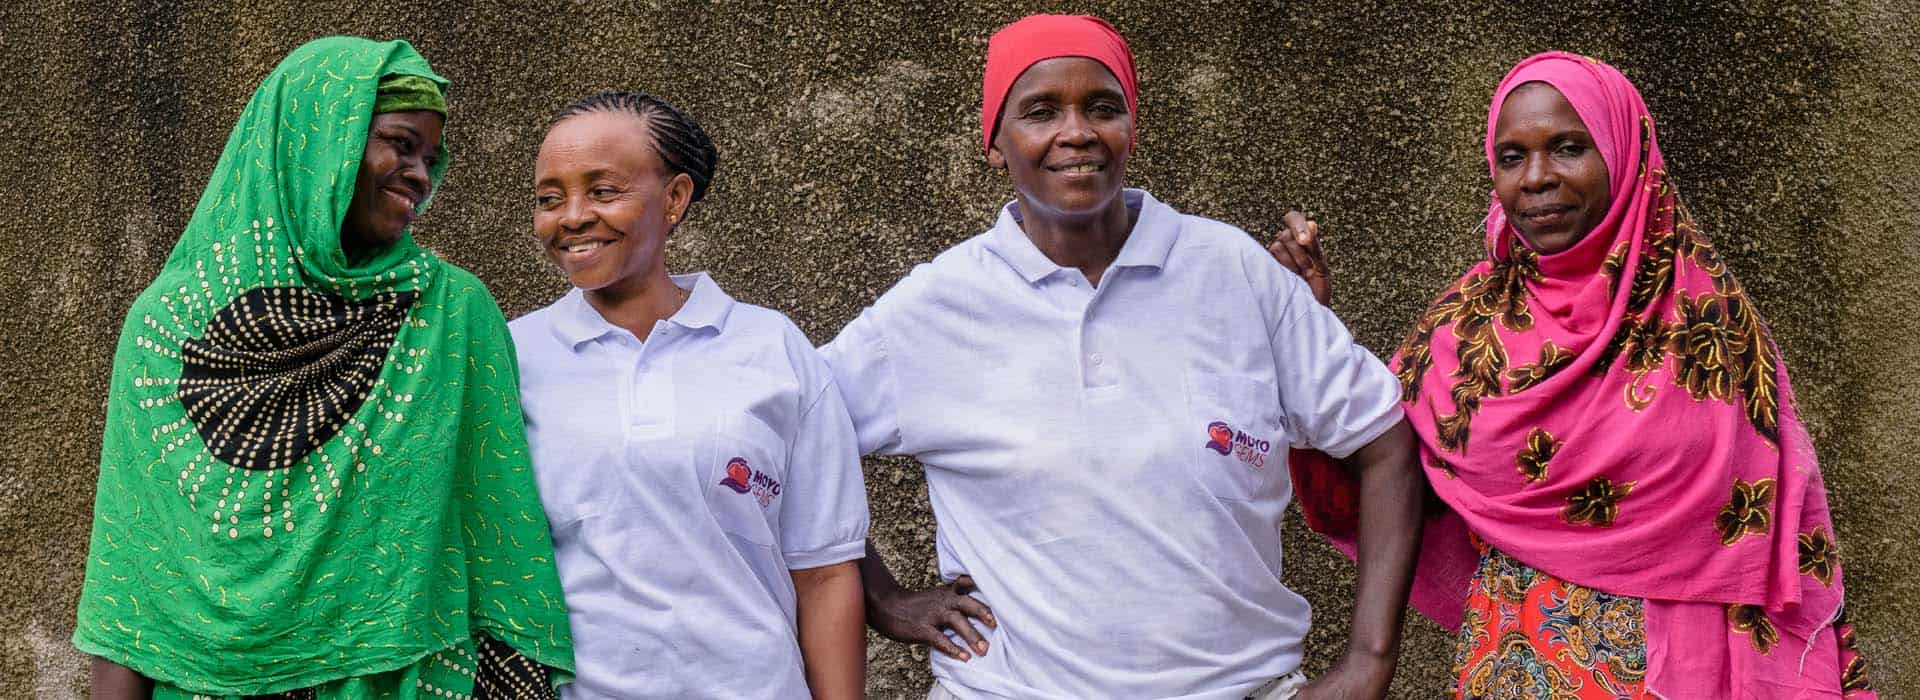 Four Tanzanian women engaged with Pact's Mines to Markets program